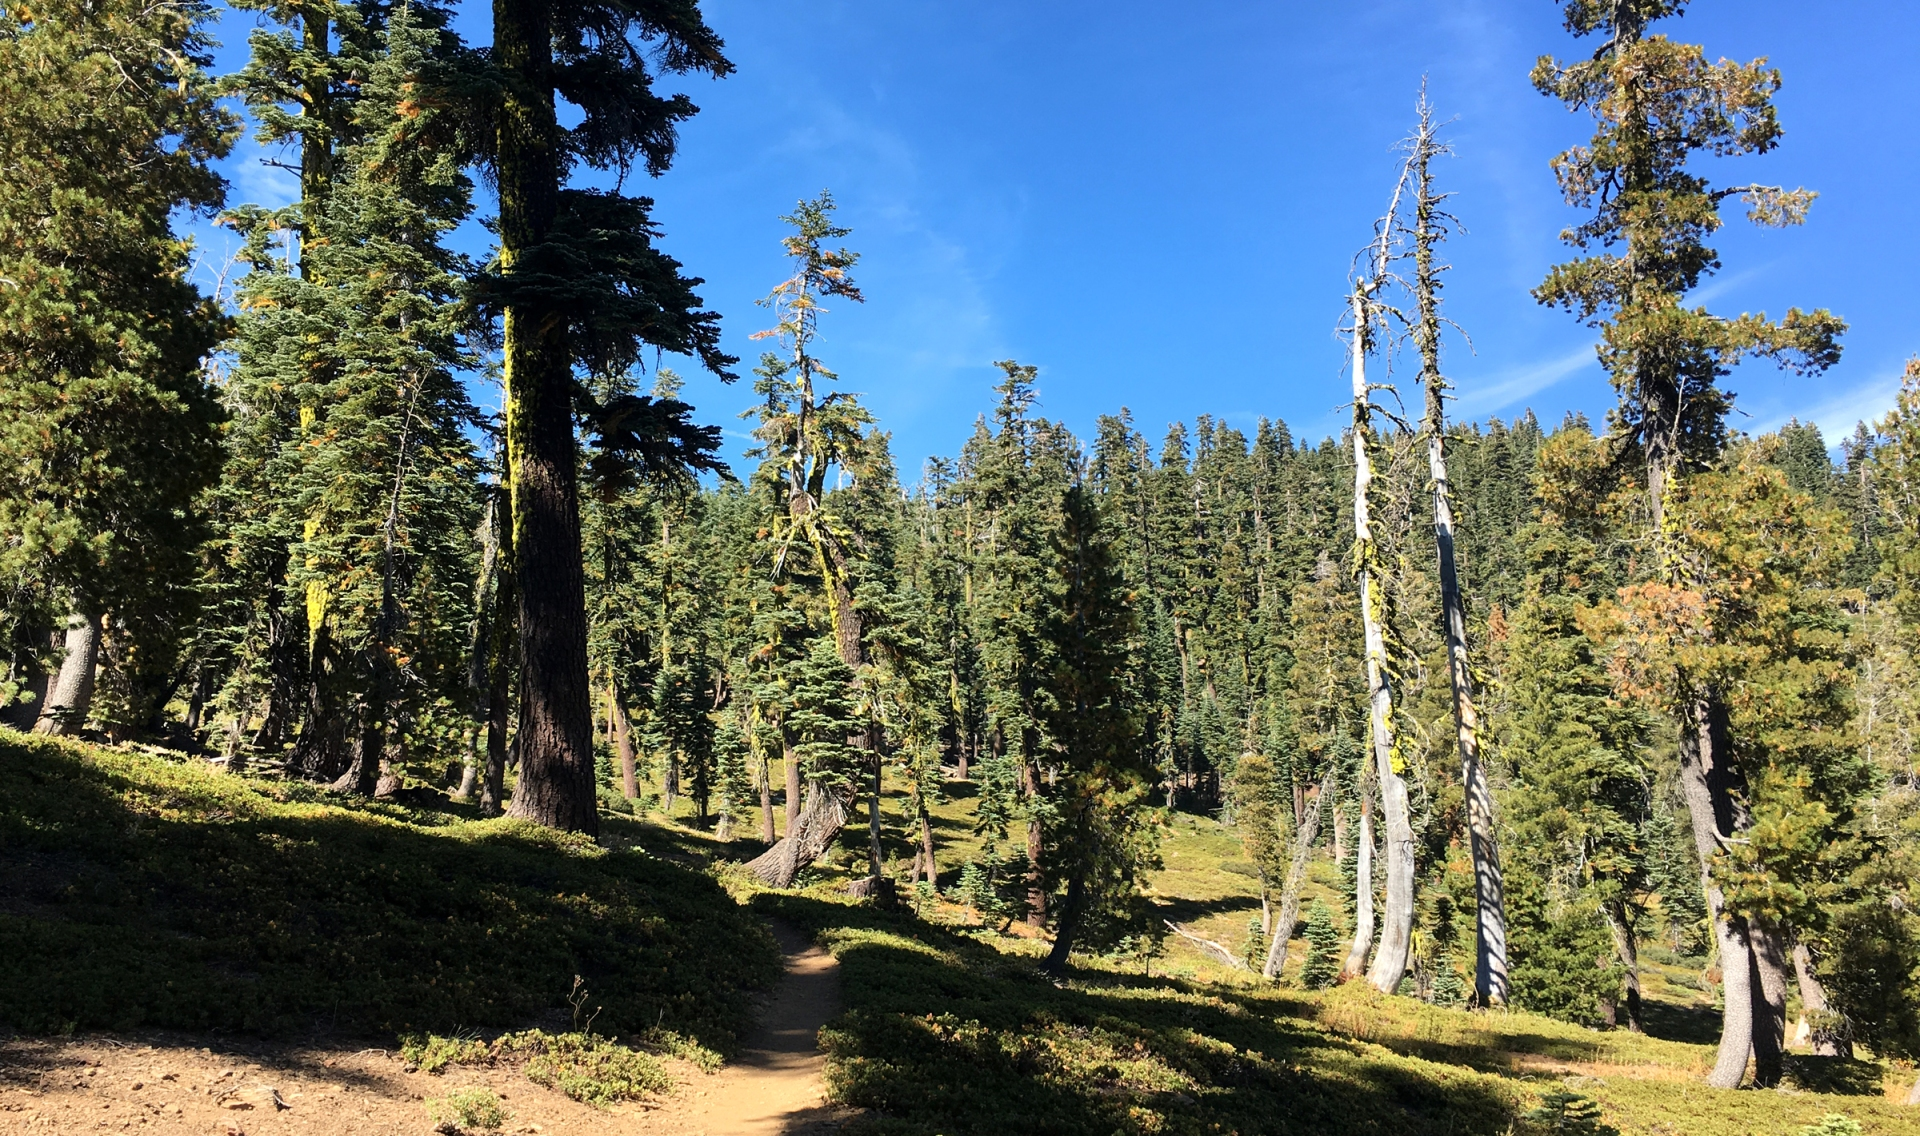 Mossy trees, hiking trail, conifer forest